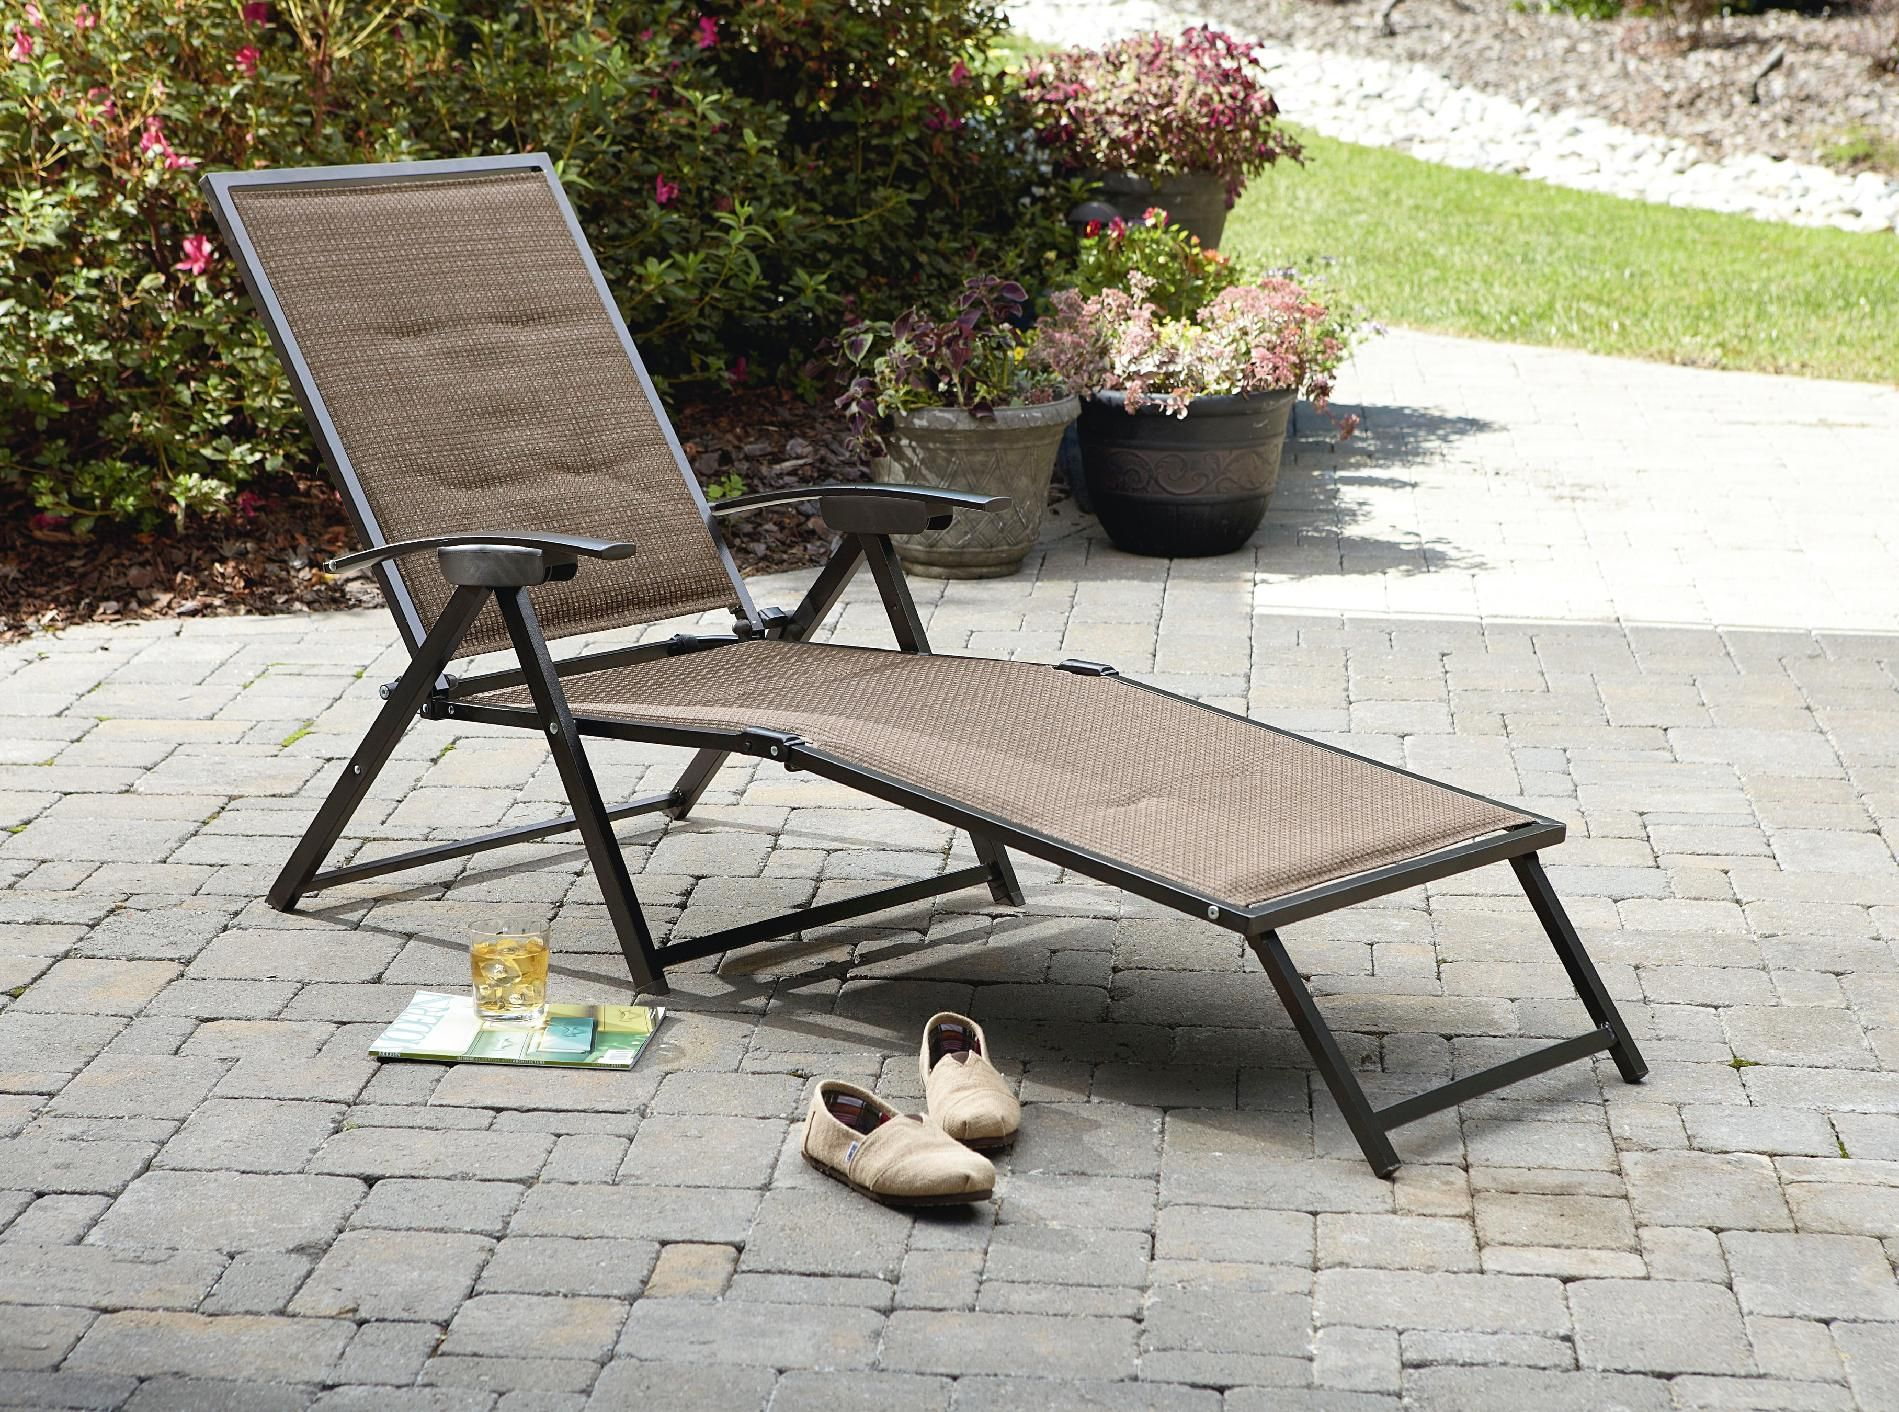 Harrison Matching Folding Padded Sling Chaise Sears $57